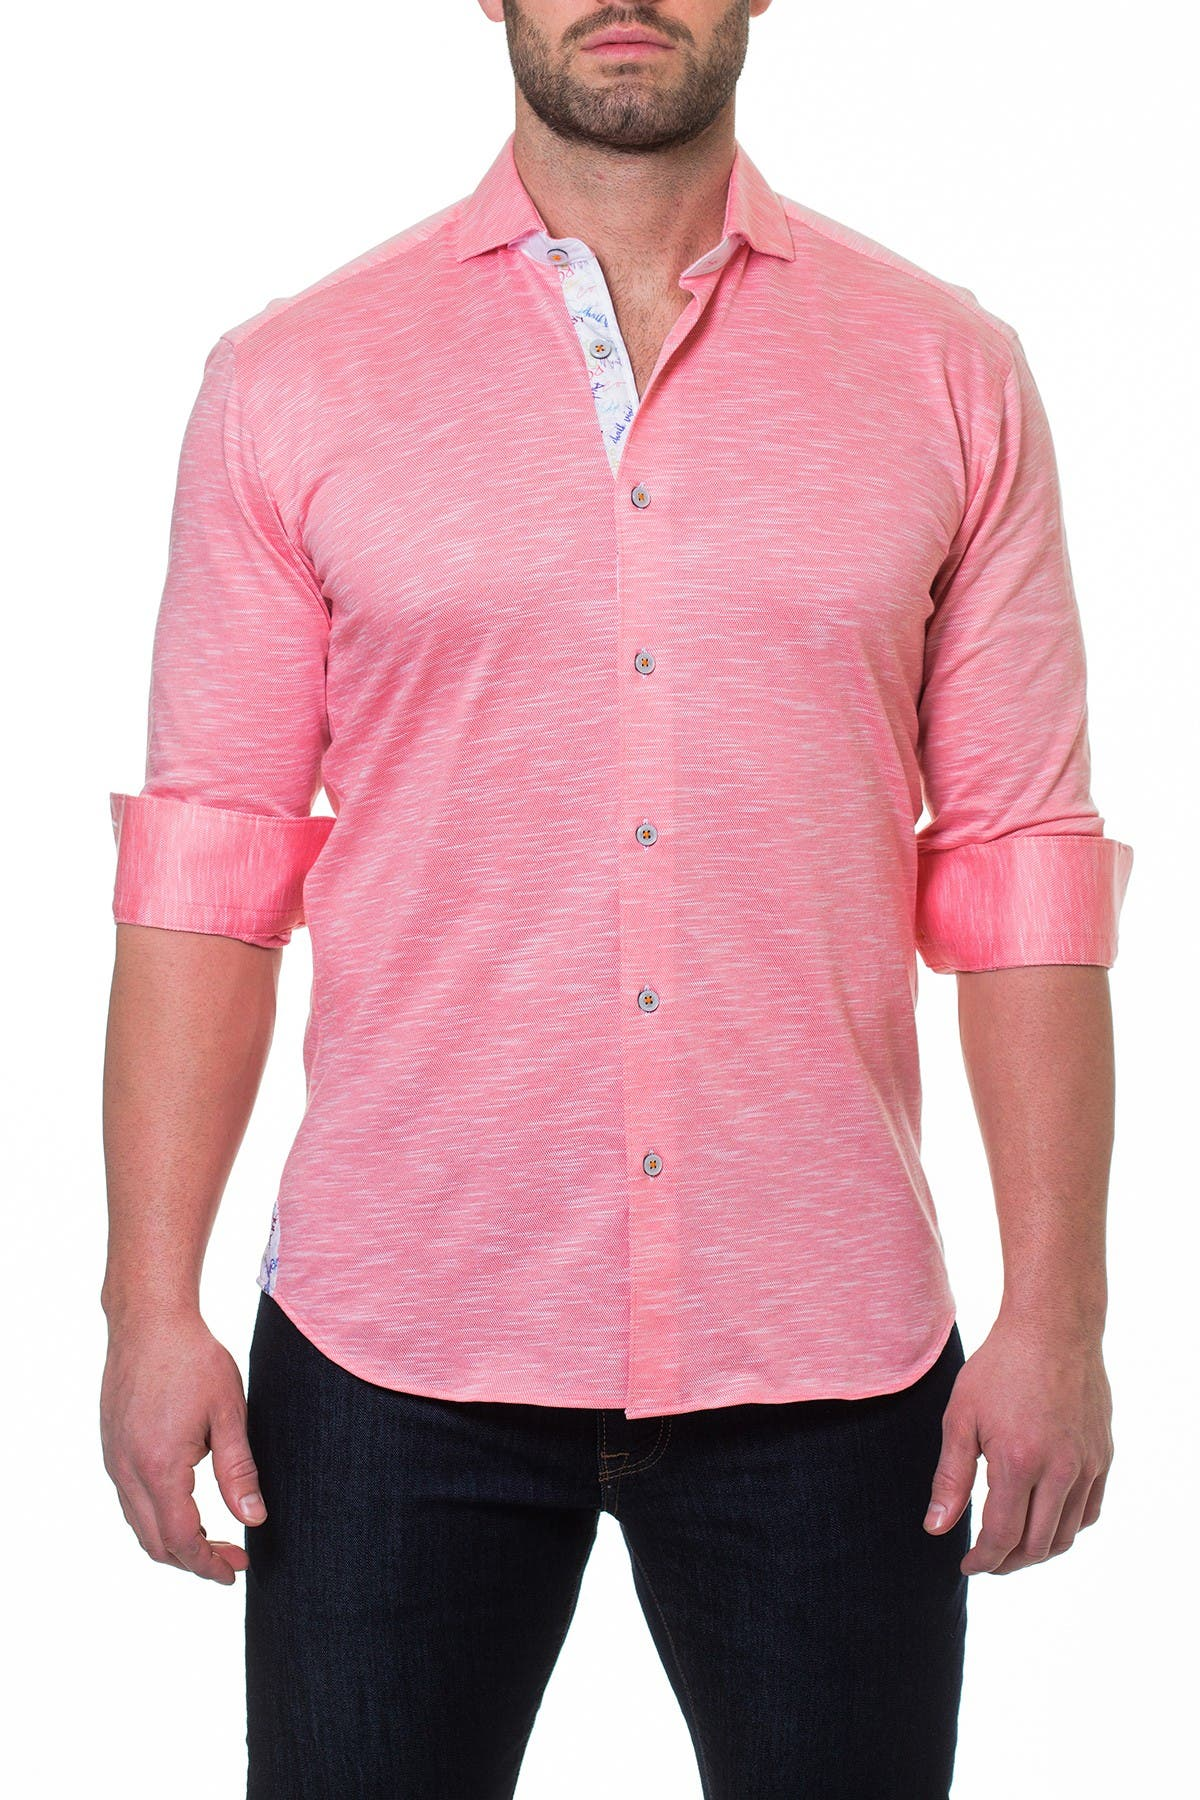 Image of Maceoo Wall Street Jersey Salmon Slim Fit Shirt